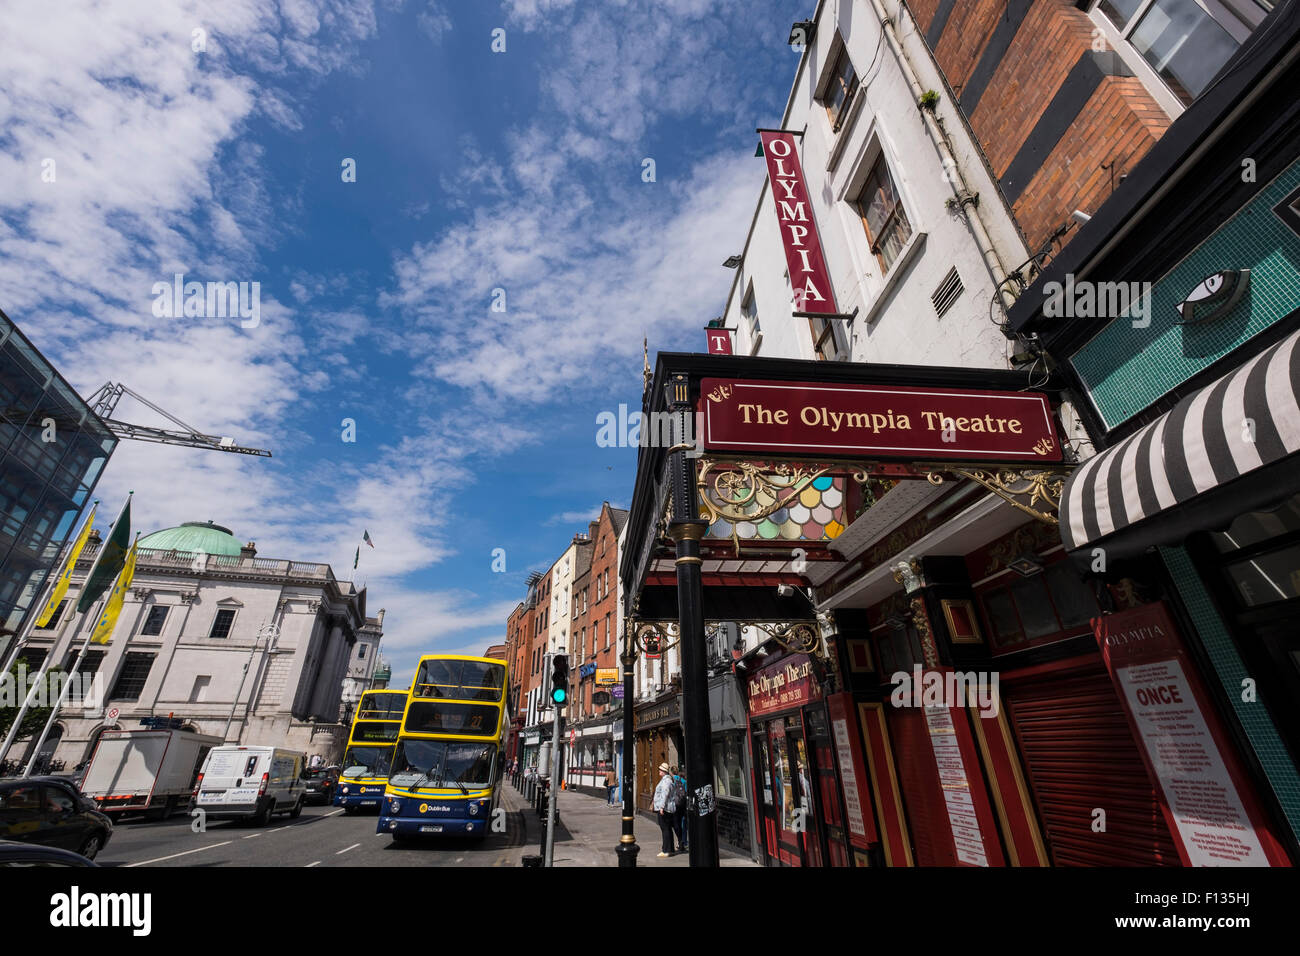 The cast iron and stained glass canopy at the entrance to the Olympia Theatre on dame Street in Dublin, Ireland. Stock Photo